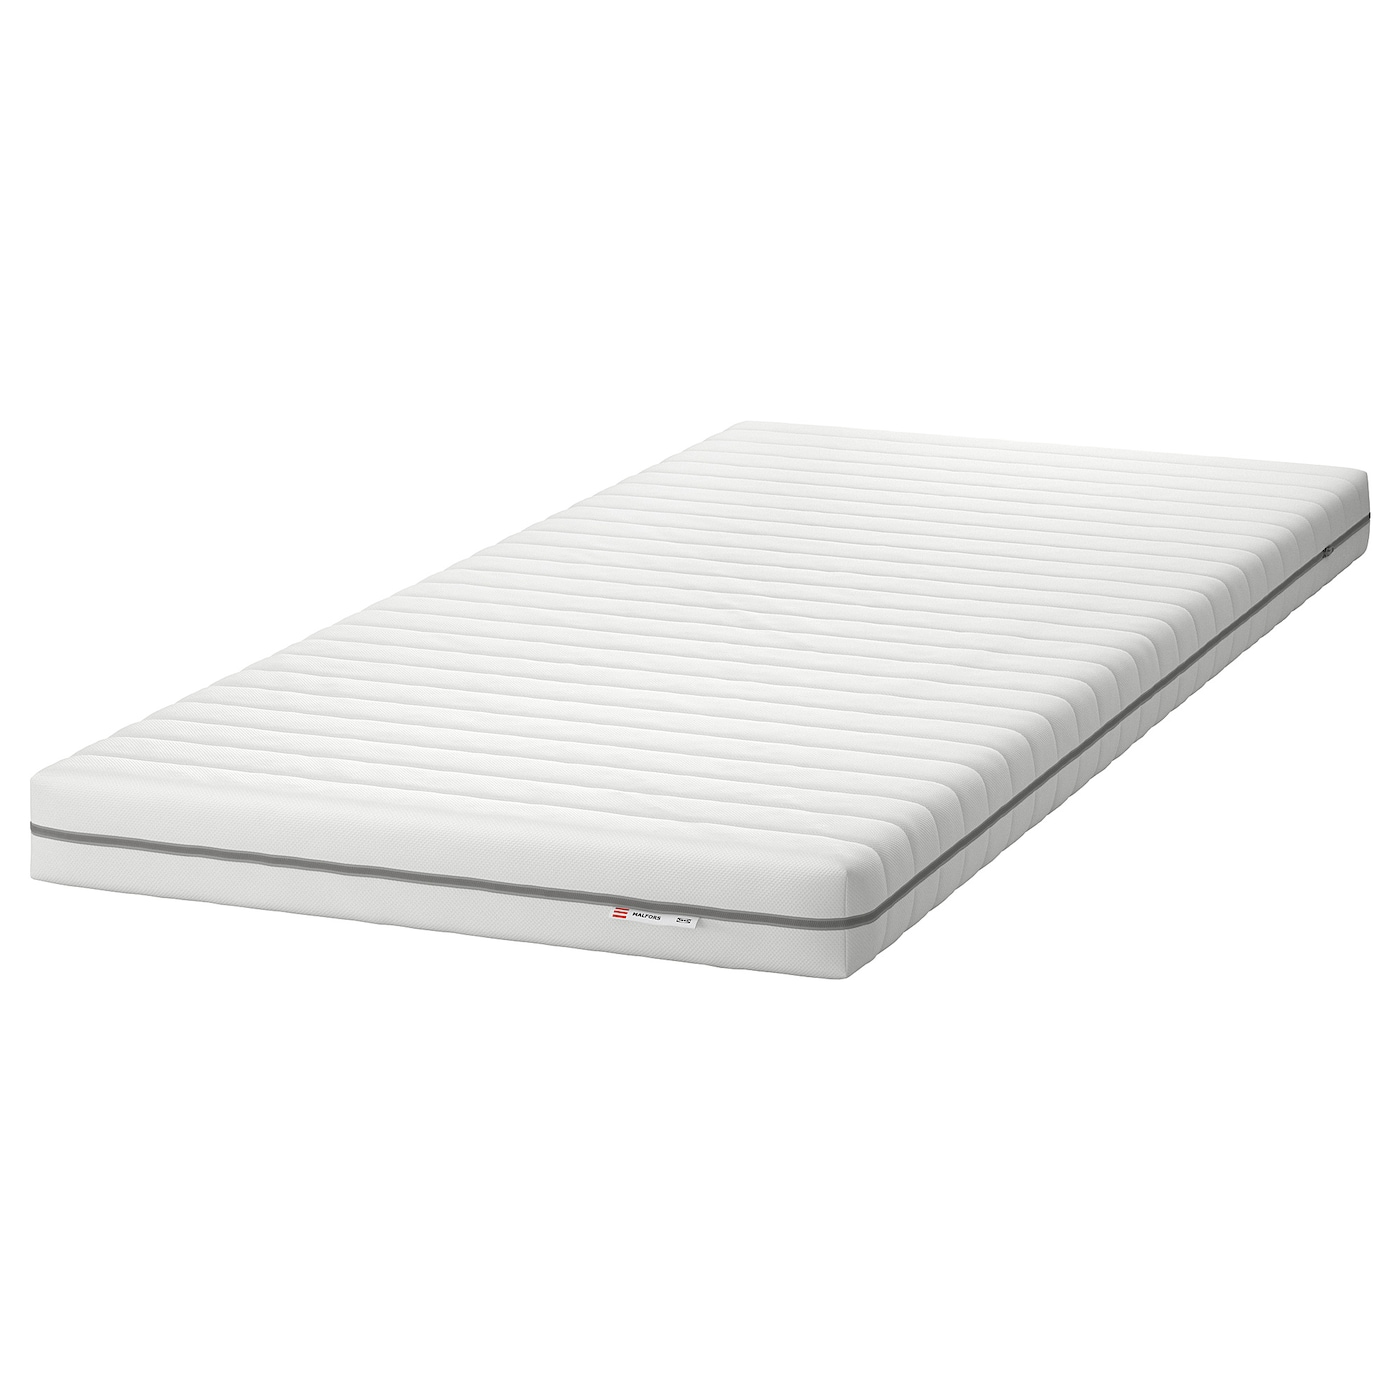 IKEA MALFORS foam mattress Get all-over support and comfort with a resilient foam mattress.